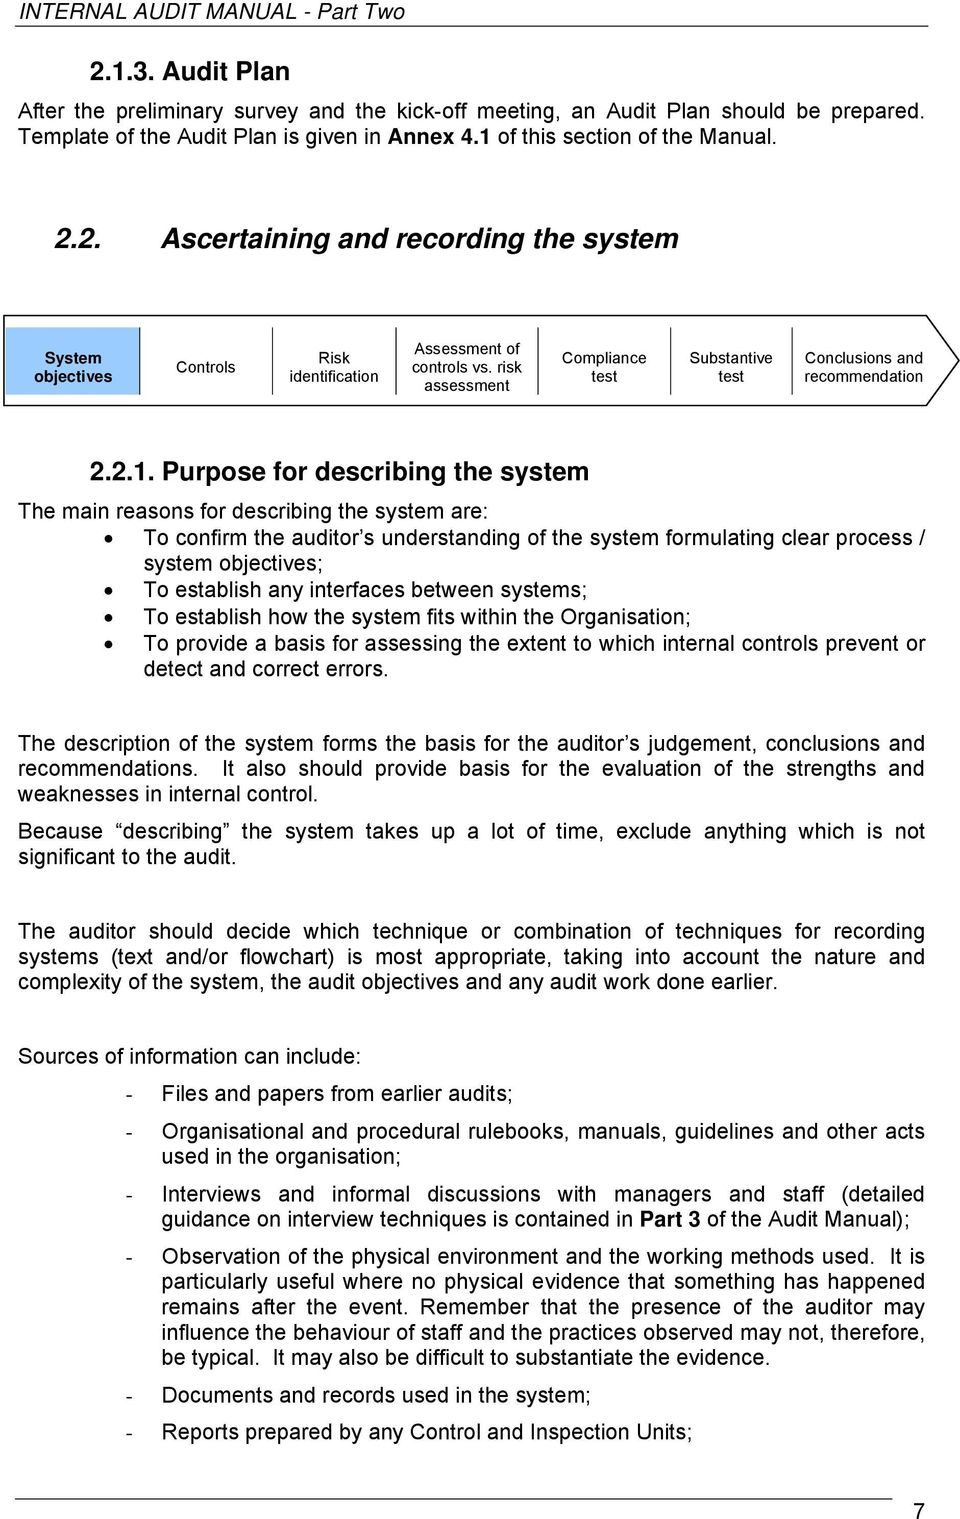 Purpose for describing the system The main reasons for describing the system are: To confirm the auditor s understanding of the system formulating clear process / system objectives; To establish any